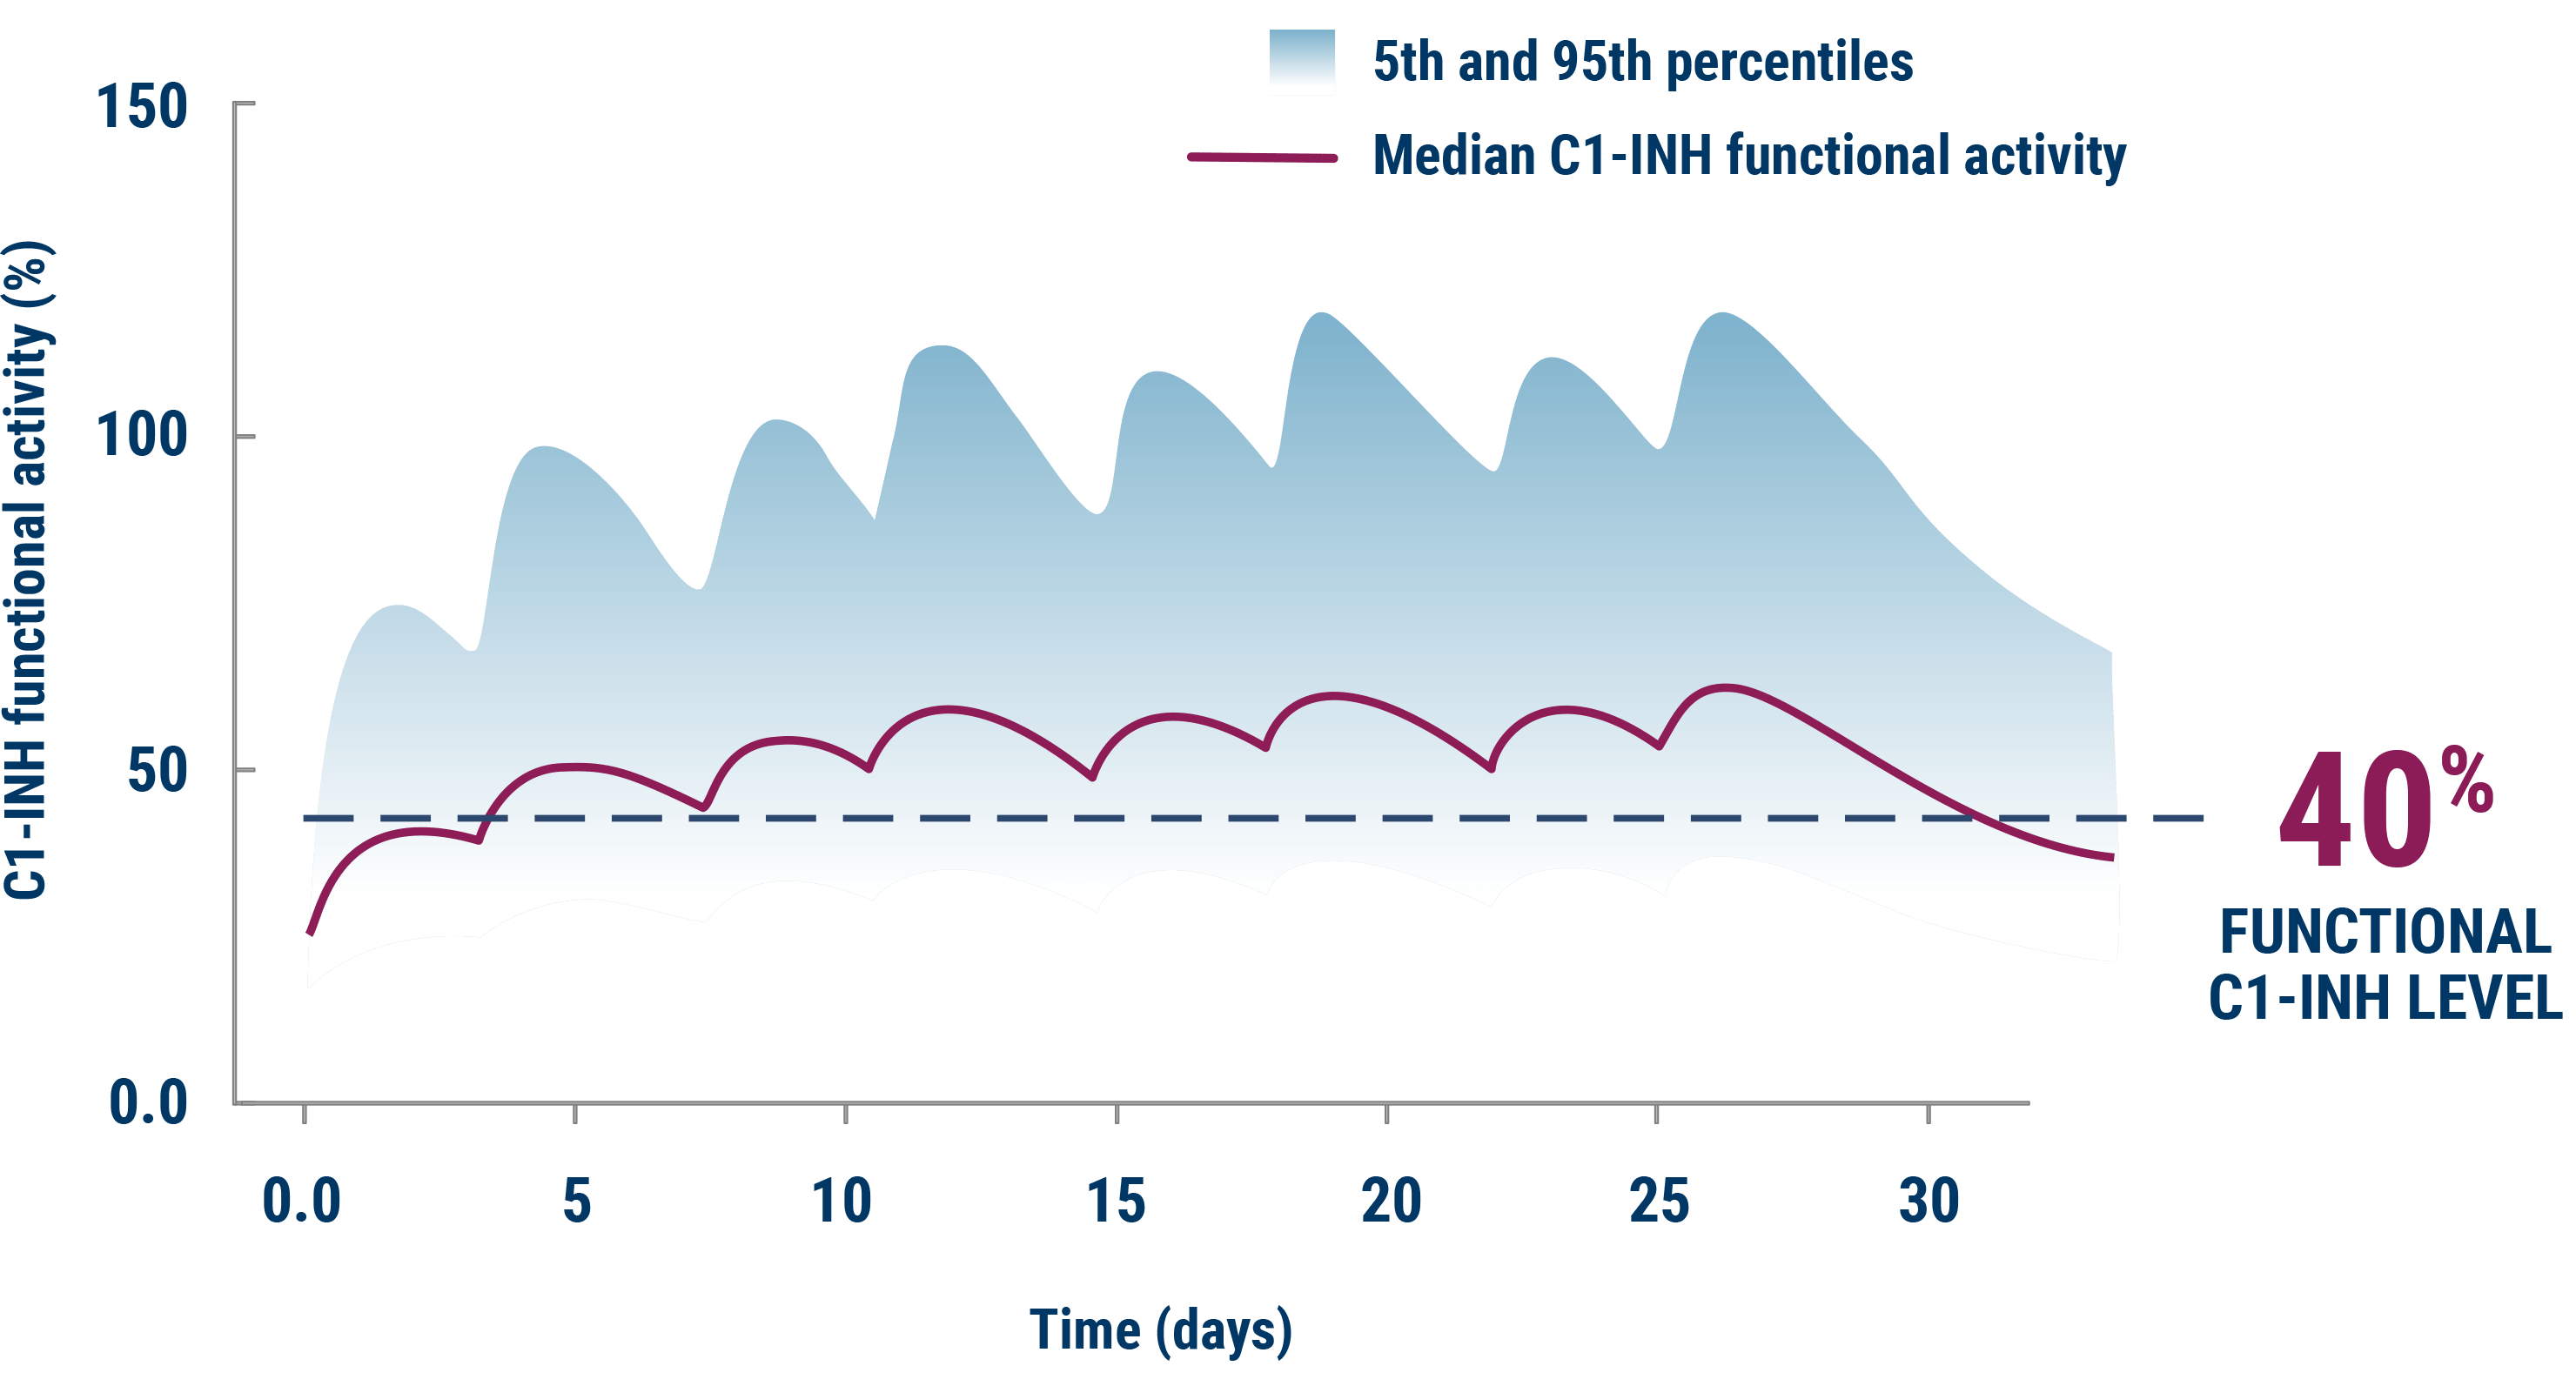 chart showing c1-inh levels over time